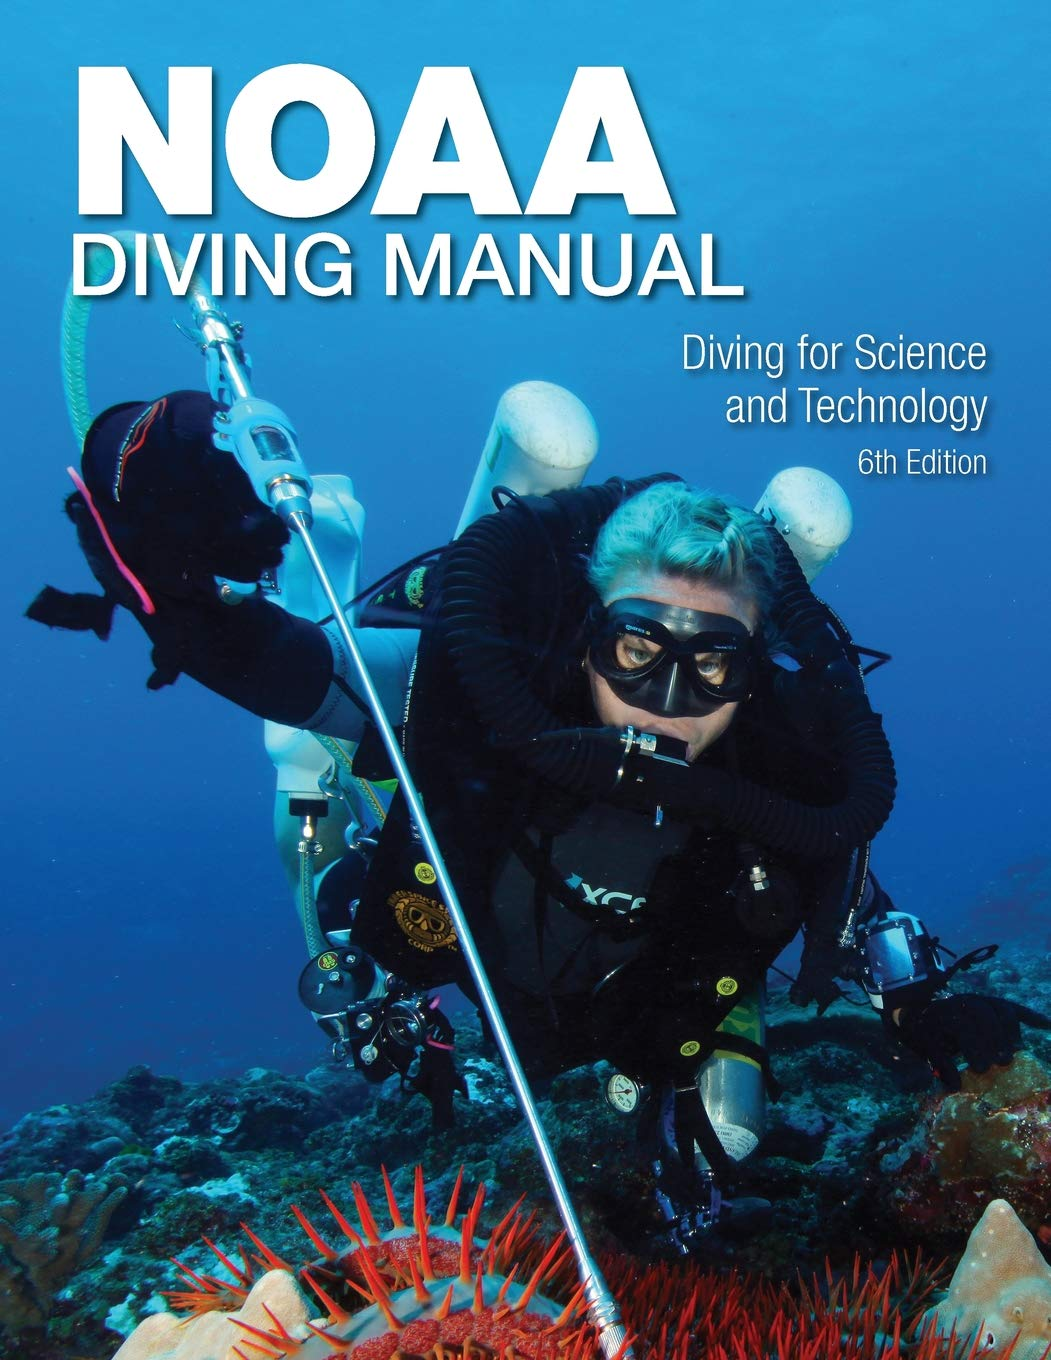 NOAA Diving Manual 6th Edition by Best Publishing Company